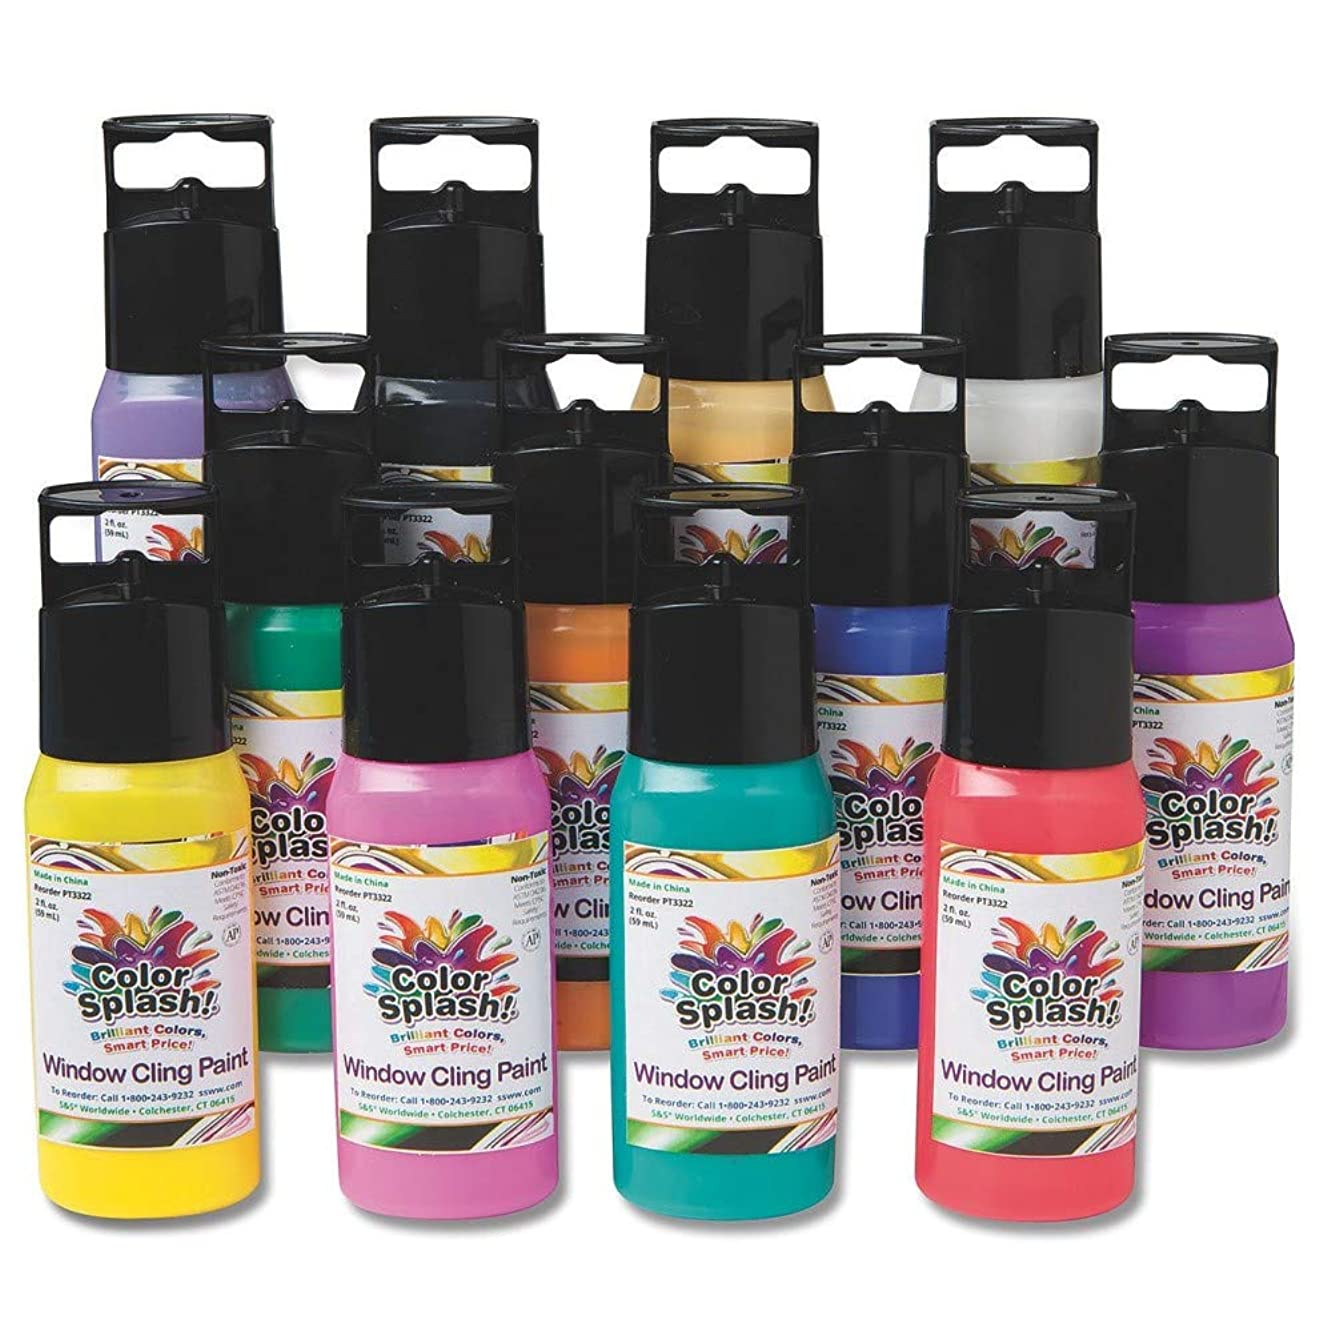 S&S Worldwide Color Splash! Window Cling Paint, 2 oz. (pack of 12)